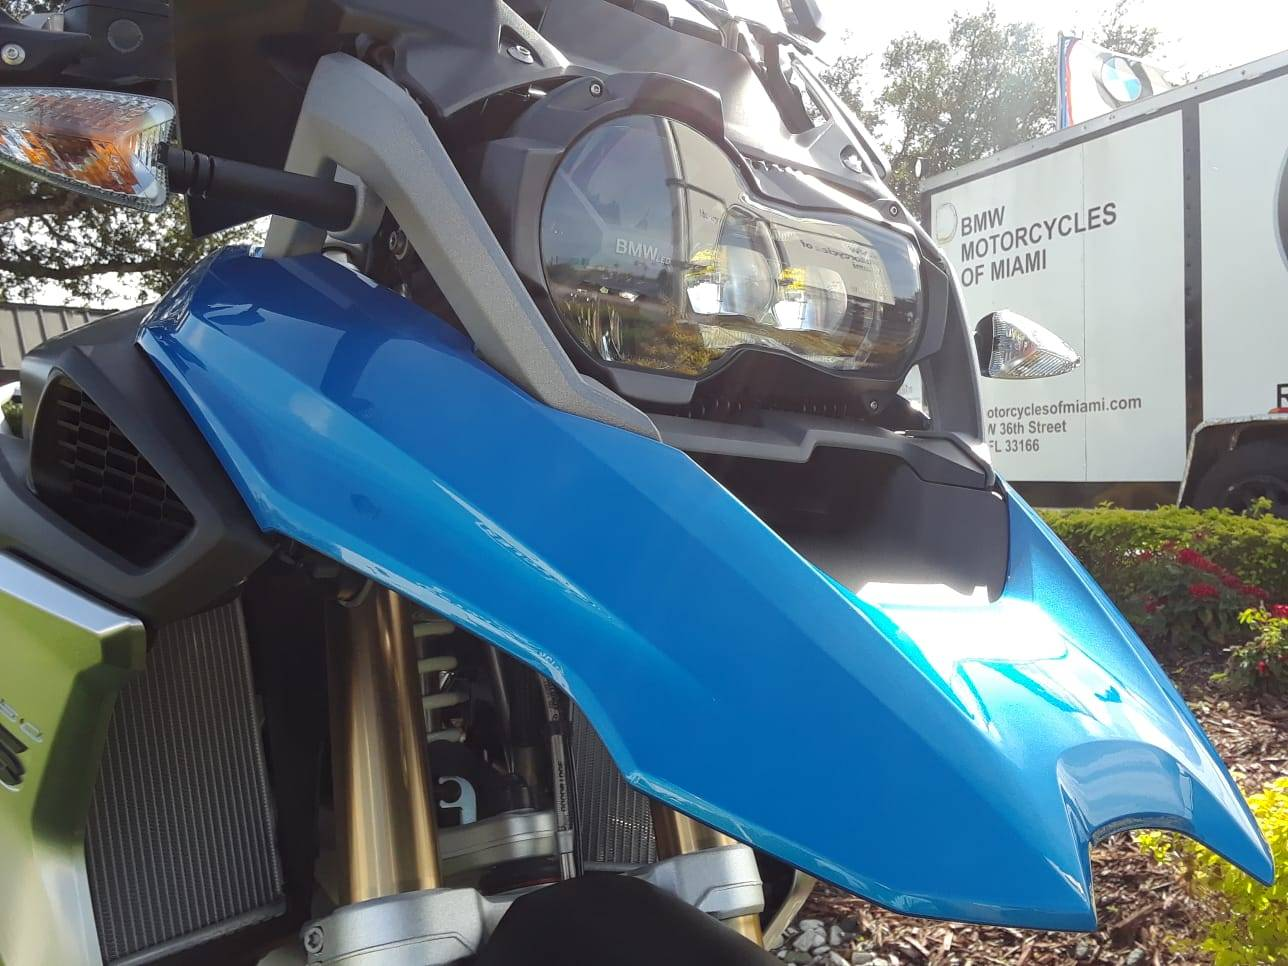 New 2019 BMW R 1250 GS for sale, New BMW R 1250GS, BMW R1250GS for sale, 1250GS, R1250GS, BMW Motorcycles of Miami, Motorcycles of Miami. Motorcycles Miami - Photo 26